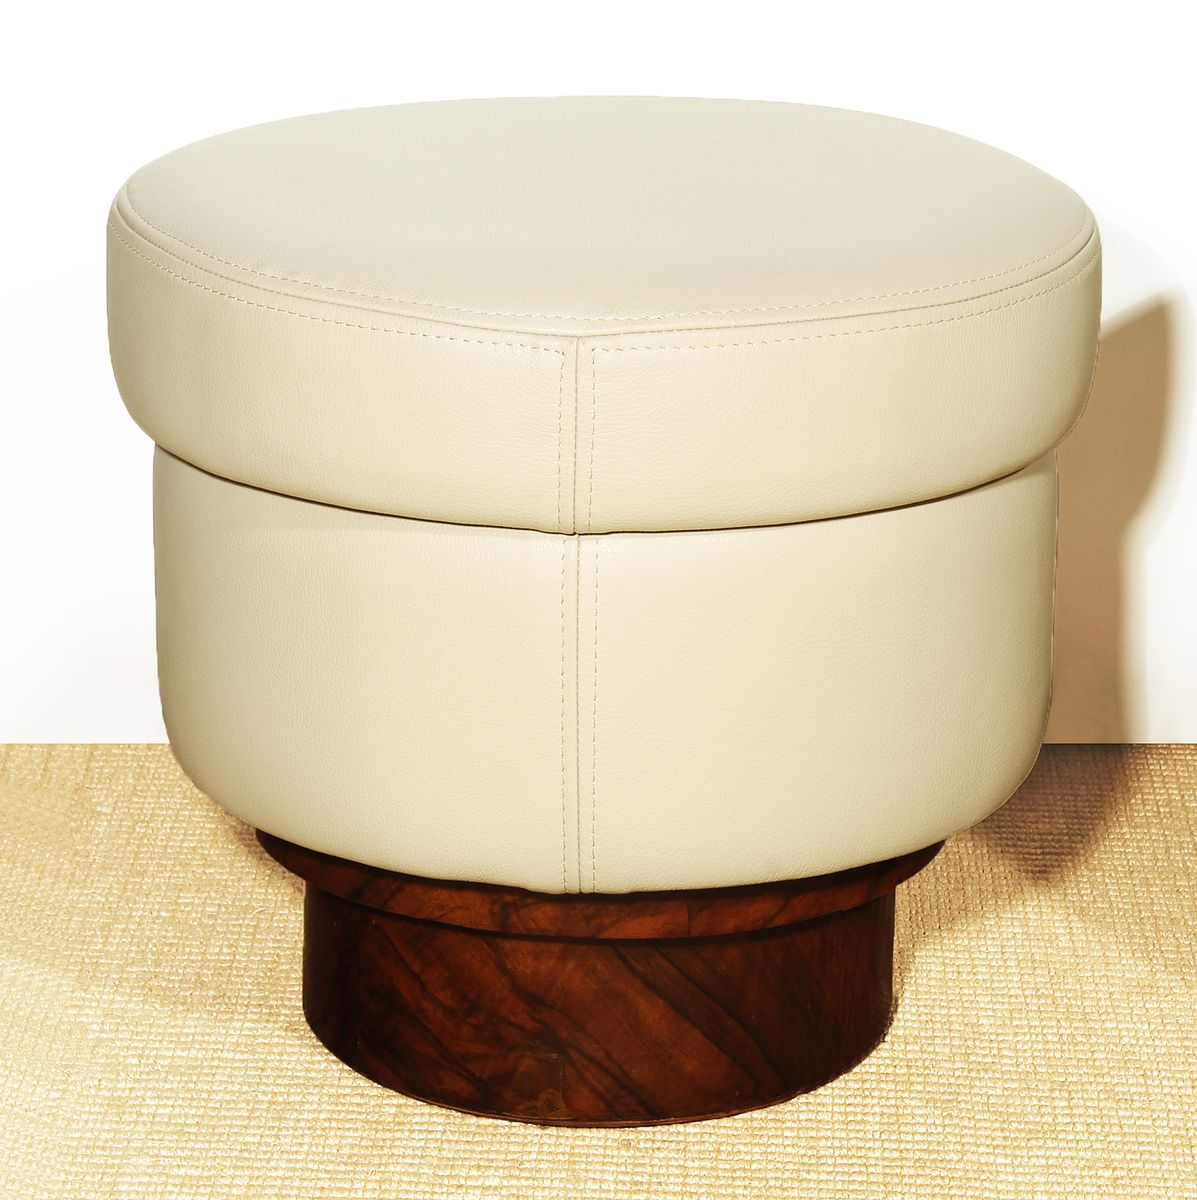 italian round beige leather poufs s set of  for sale at pamono - italian round beige leather poufs s set of